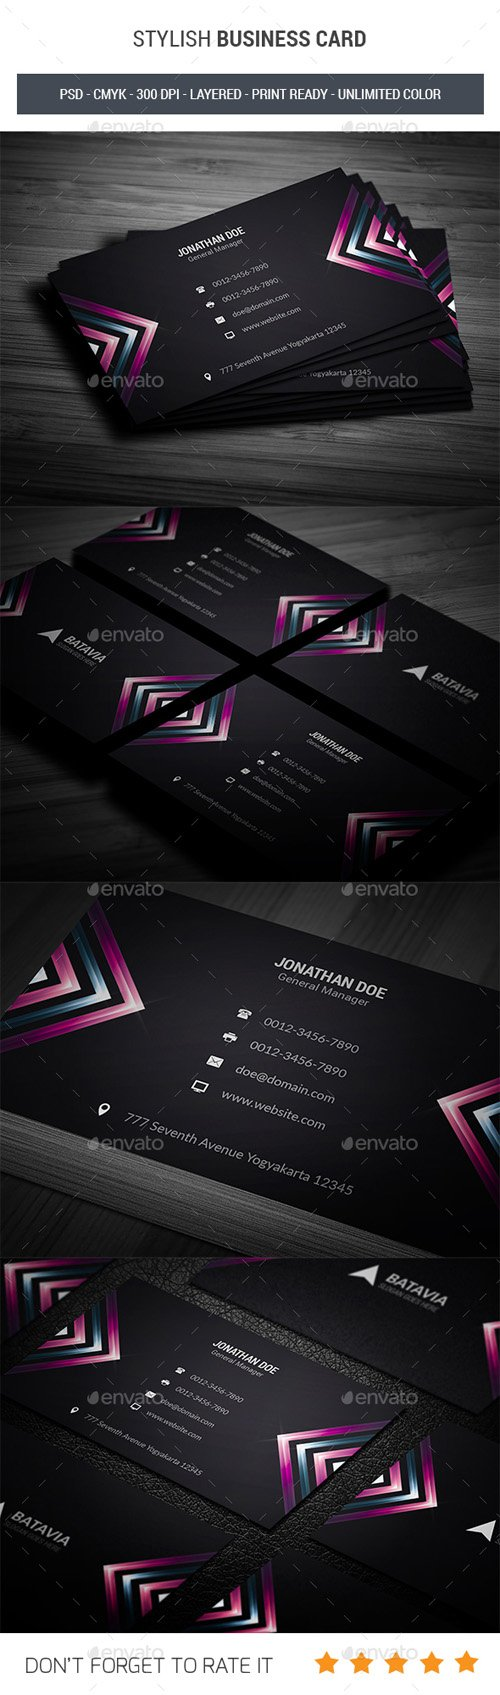 Stylish Business Card 19903656